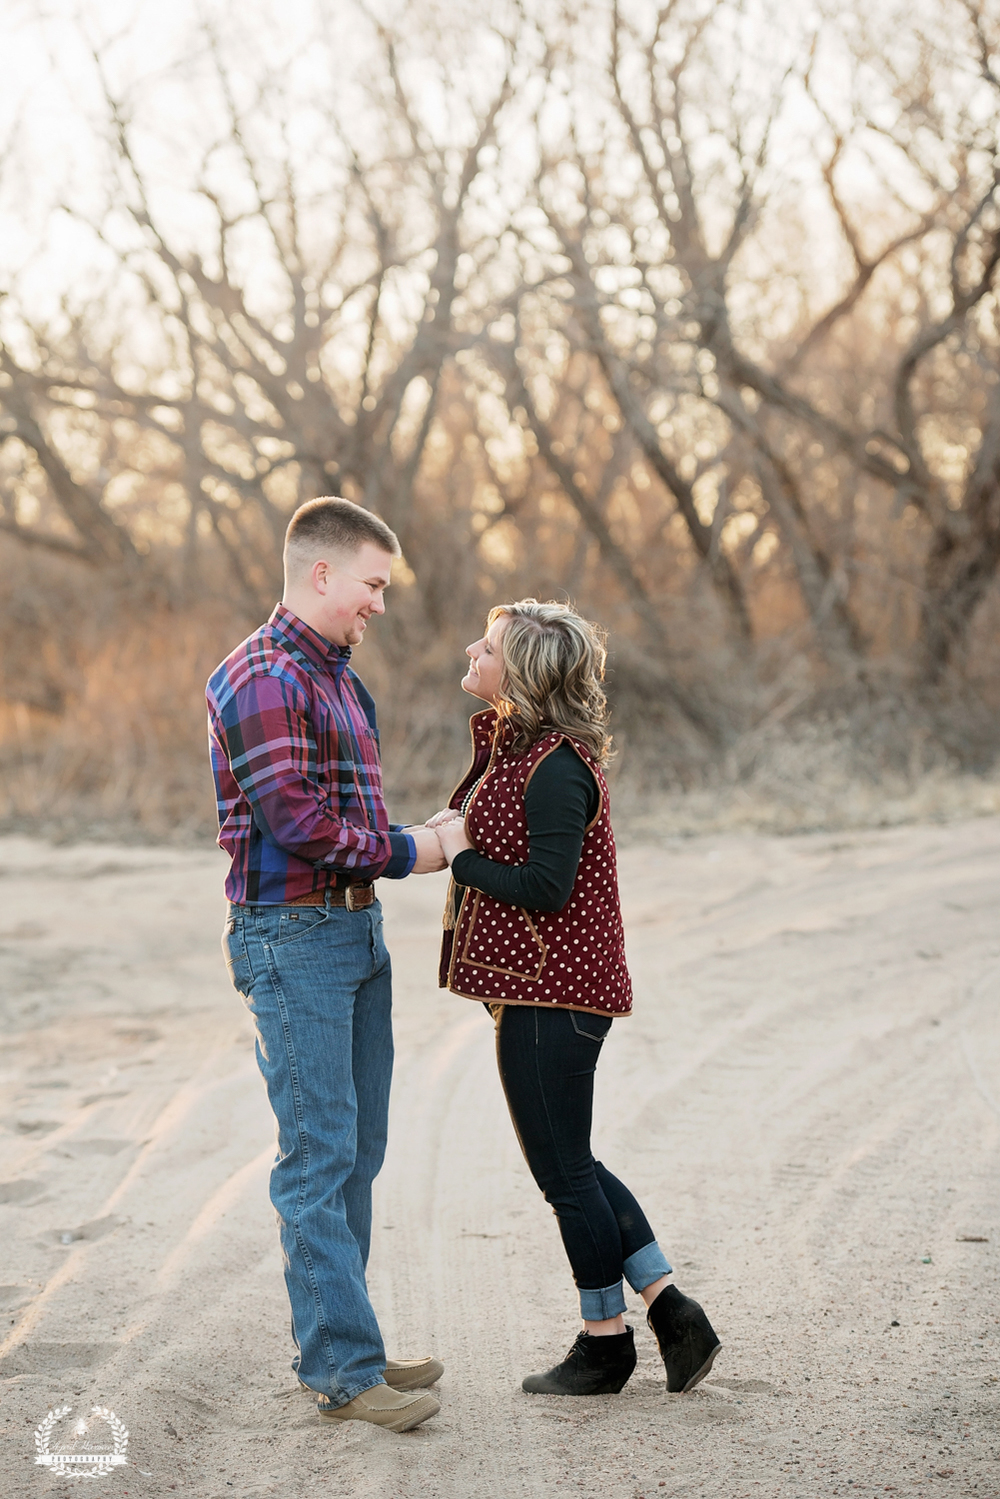 southwest-kansas-engagement-photography28.jpg